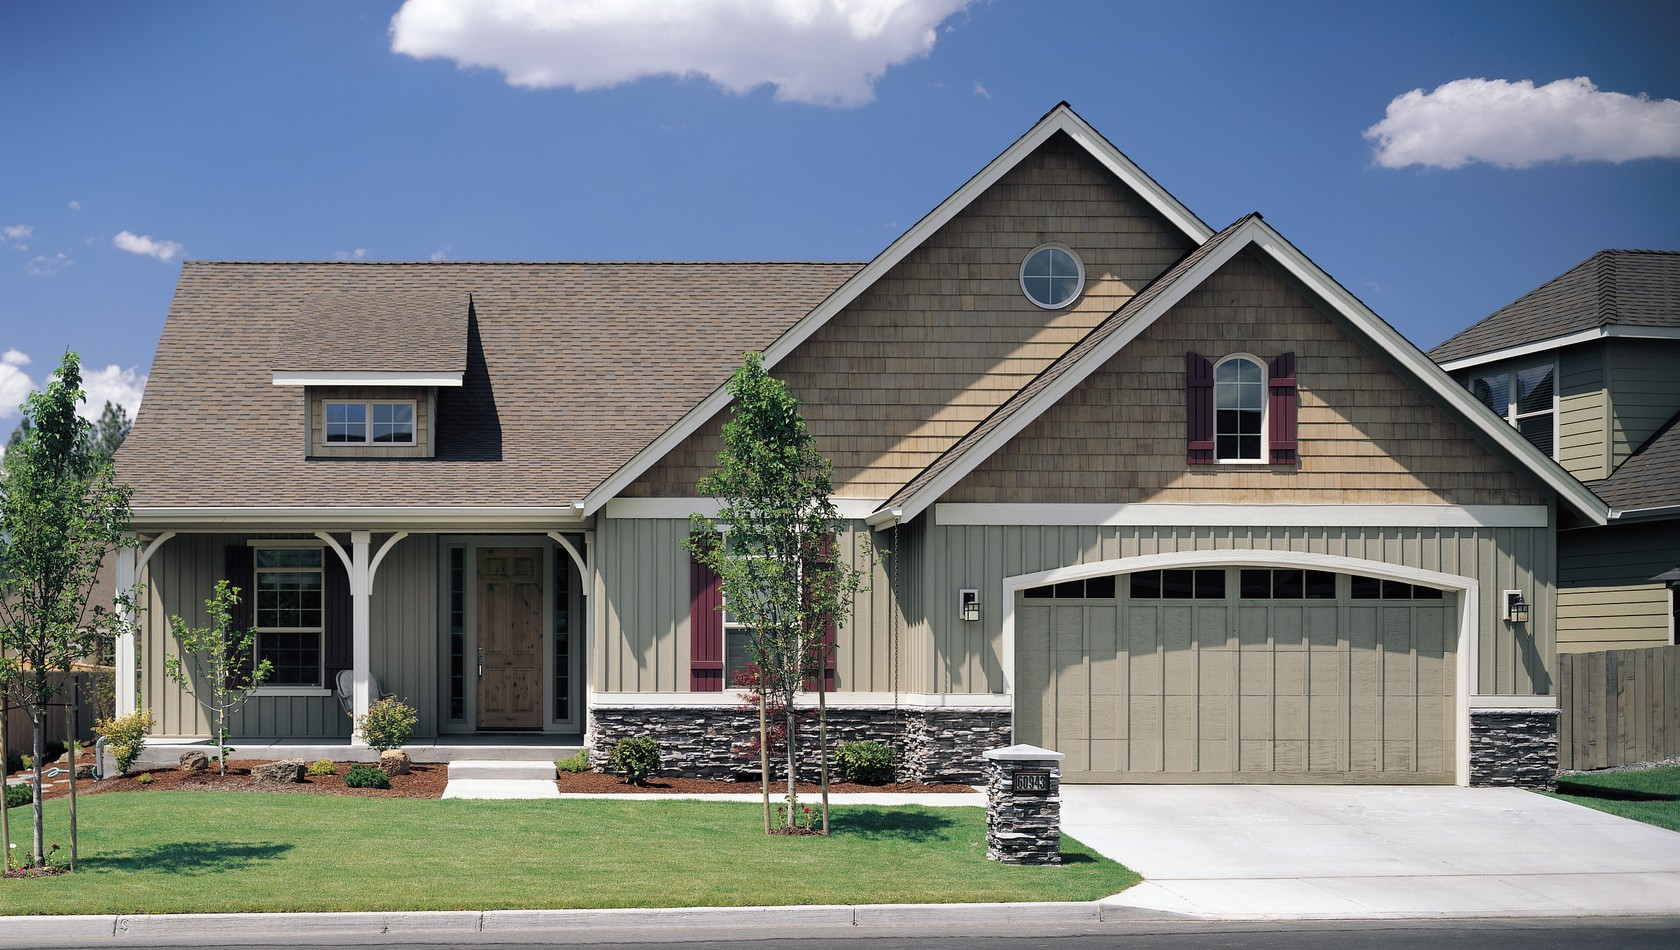 Main image for house plan B1150: The Lindley